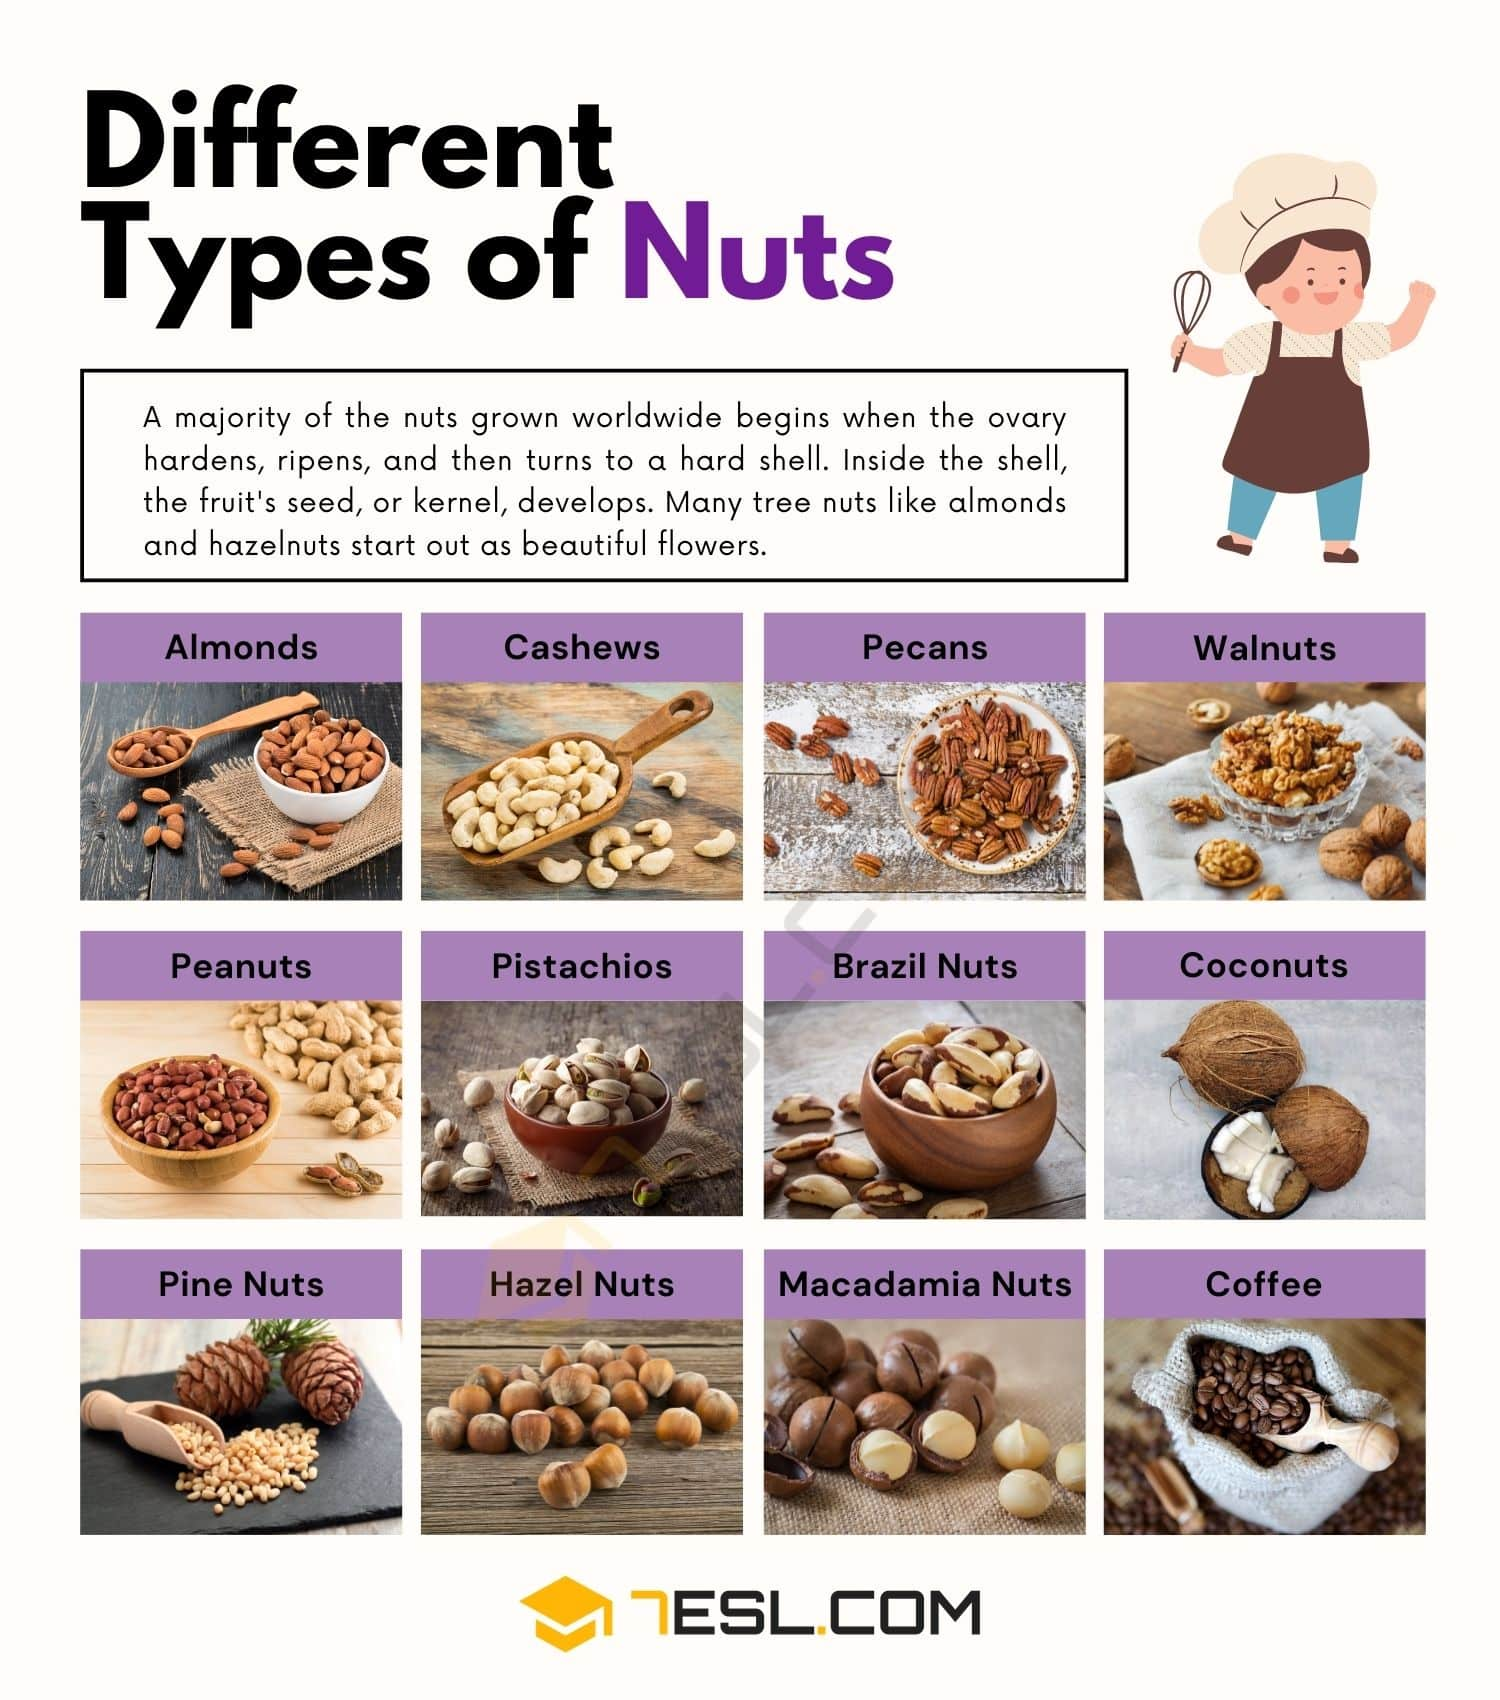 Types of Nuts